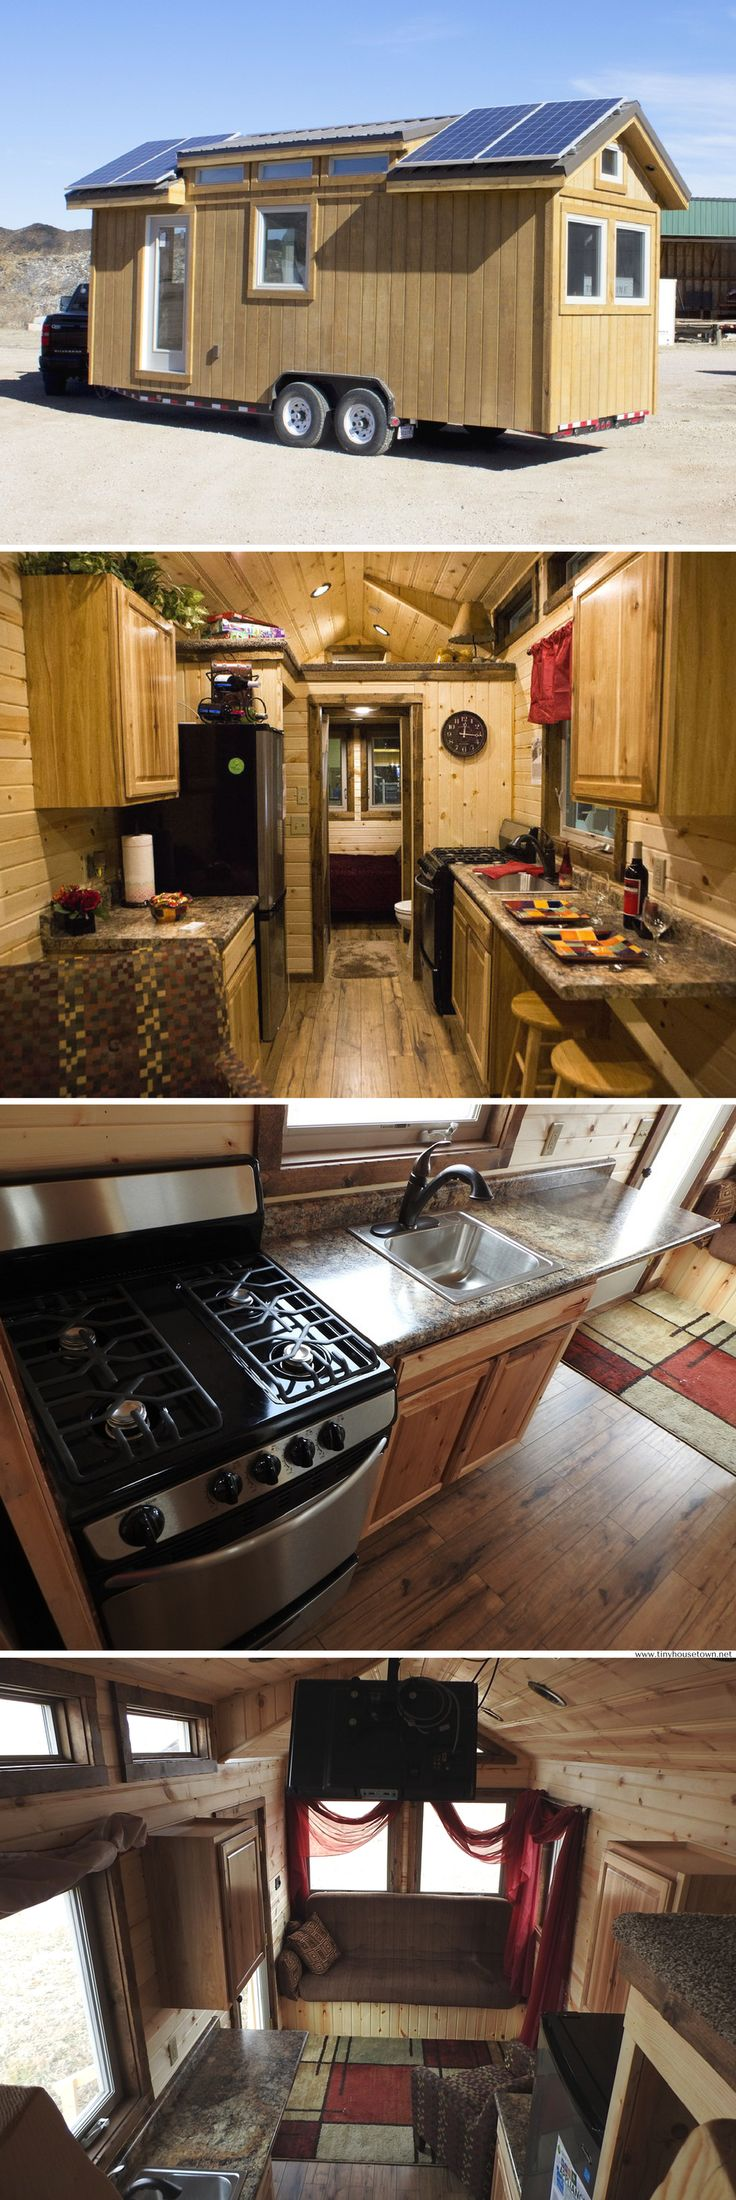 3208 best cabins and tiny houses images on pinterest small a 192 sq ft solar powered tiny house for sale in piedmont sd